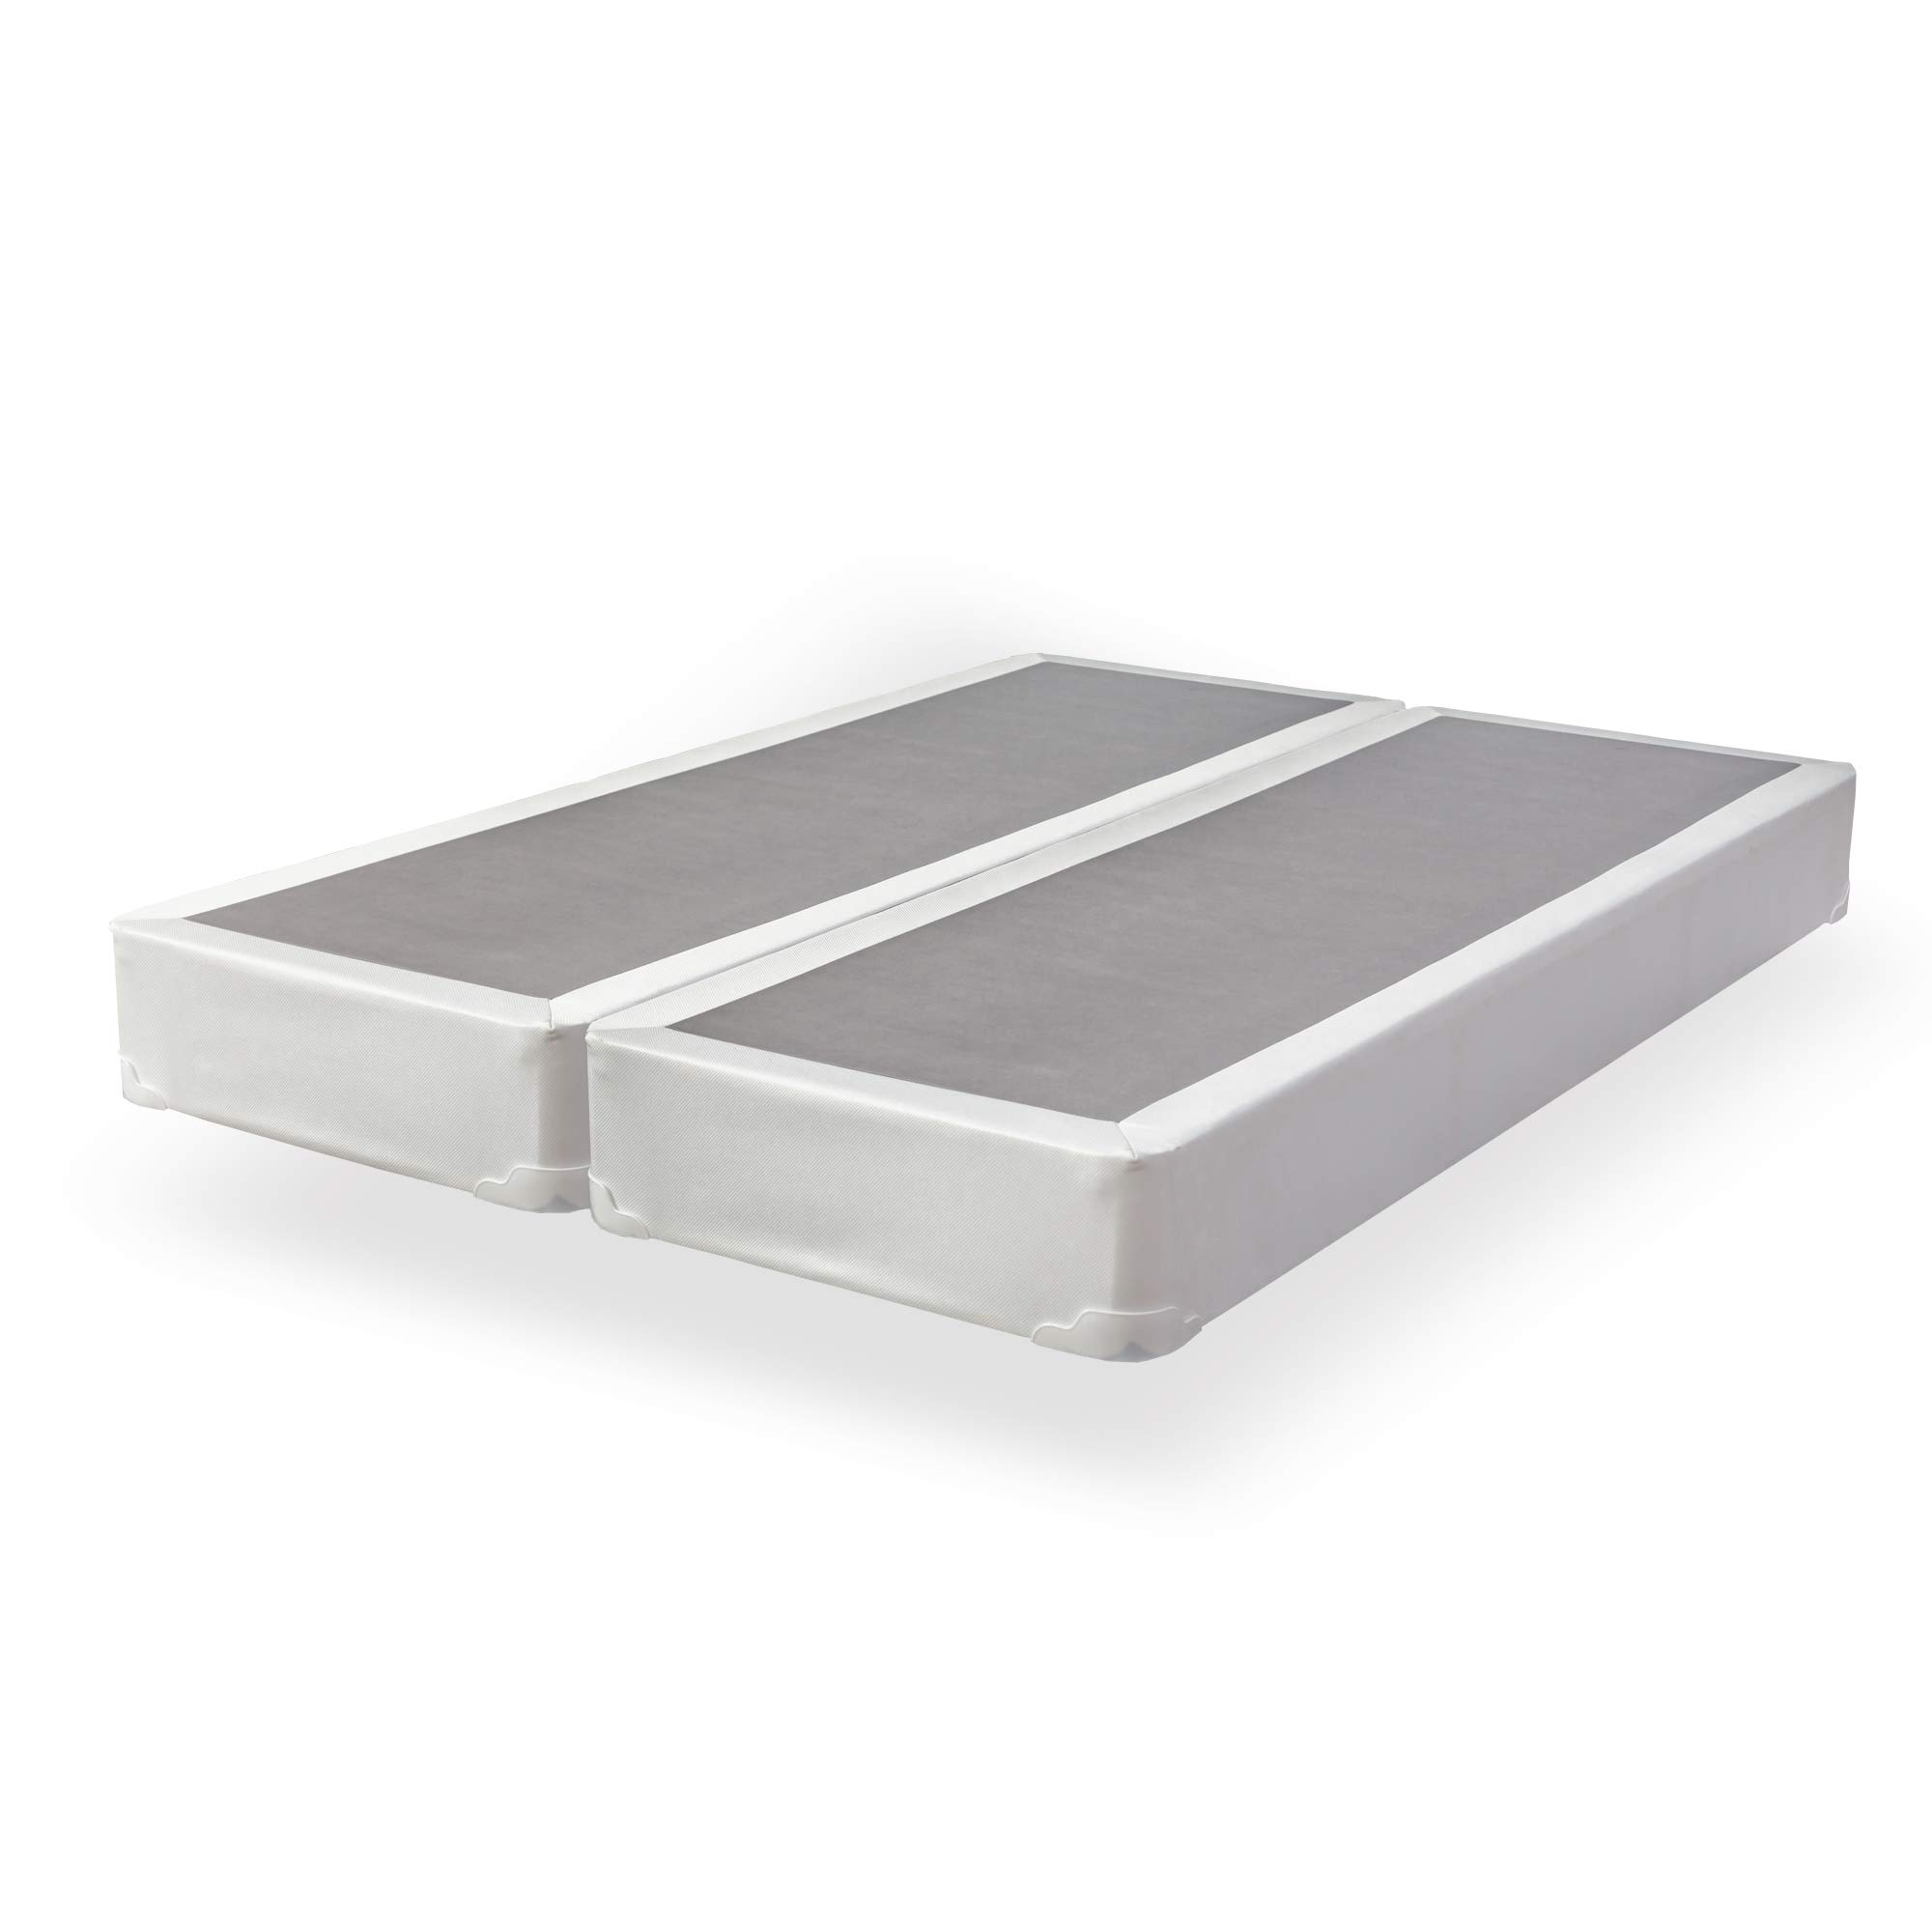 Greaton, 8-inch Split Box Spring/Foundation for Mattress, No Assembly Required, 74'' x 44''(Not Standard Size) by Greaton (Image #4)